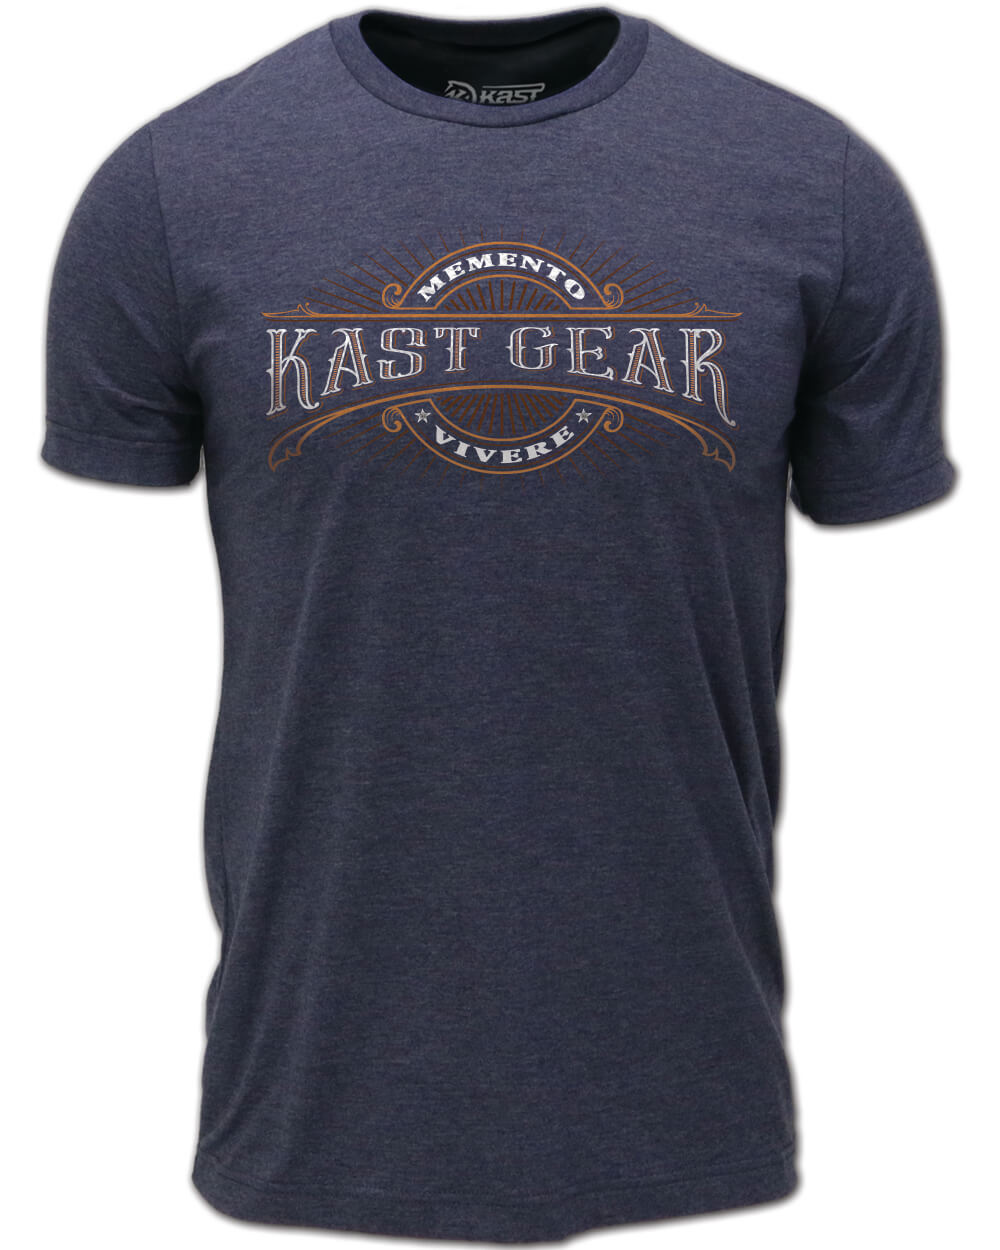 Old West Kast Fishing T Shirt Kastgear